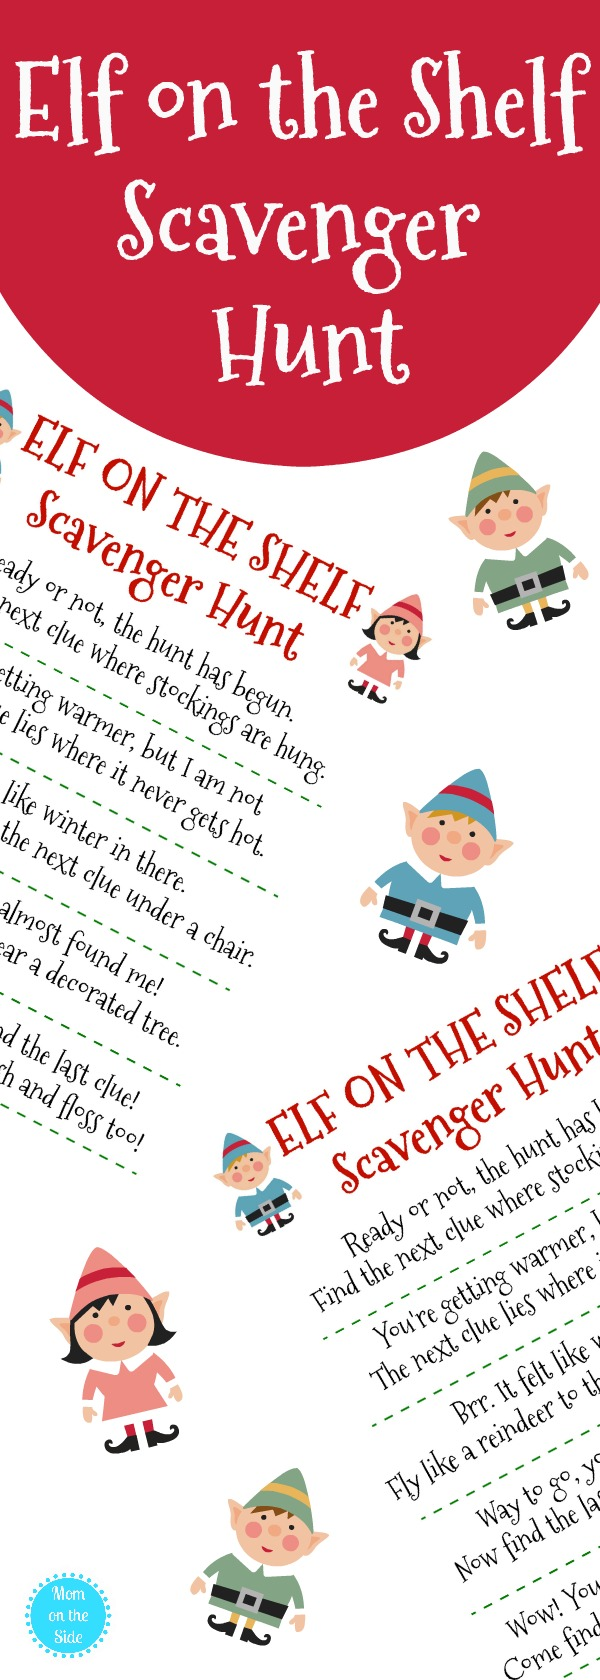 Need elf on the shelf ideas? Grab this free printable Elf on the Shelf Scavenger Hunt for Christmas the kids will love!